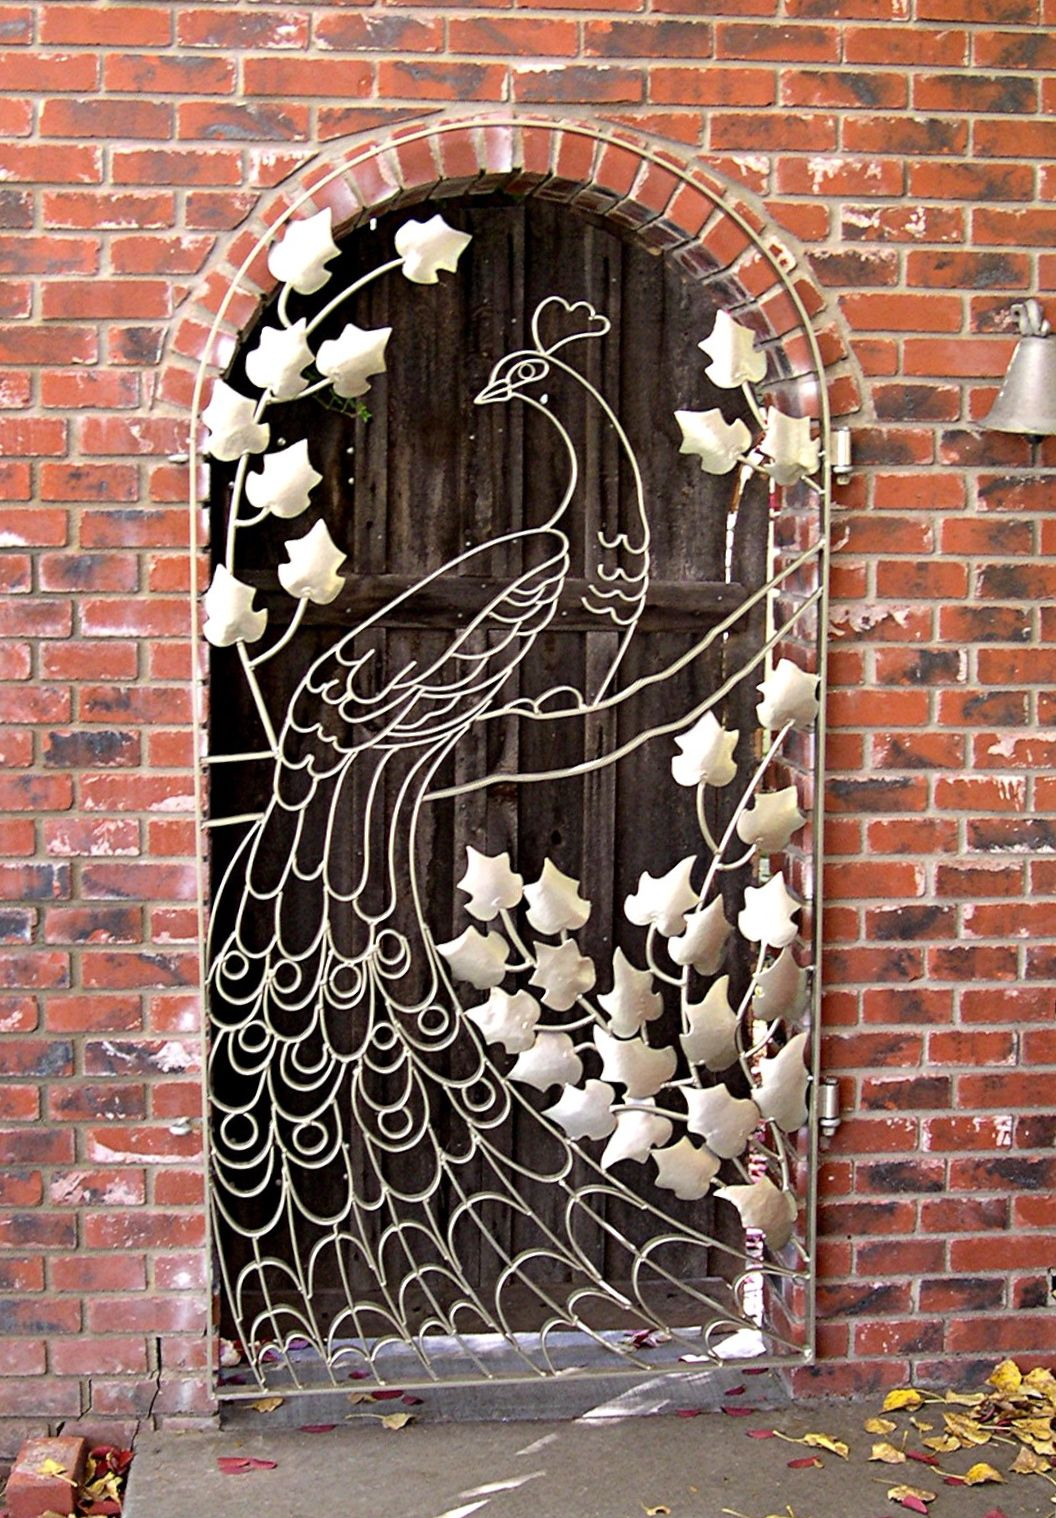 Pin antique garden gates in wrought iron an art nouveau style on - Find This Pin And More On Quilting